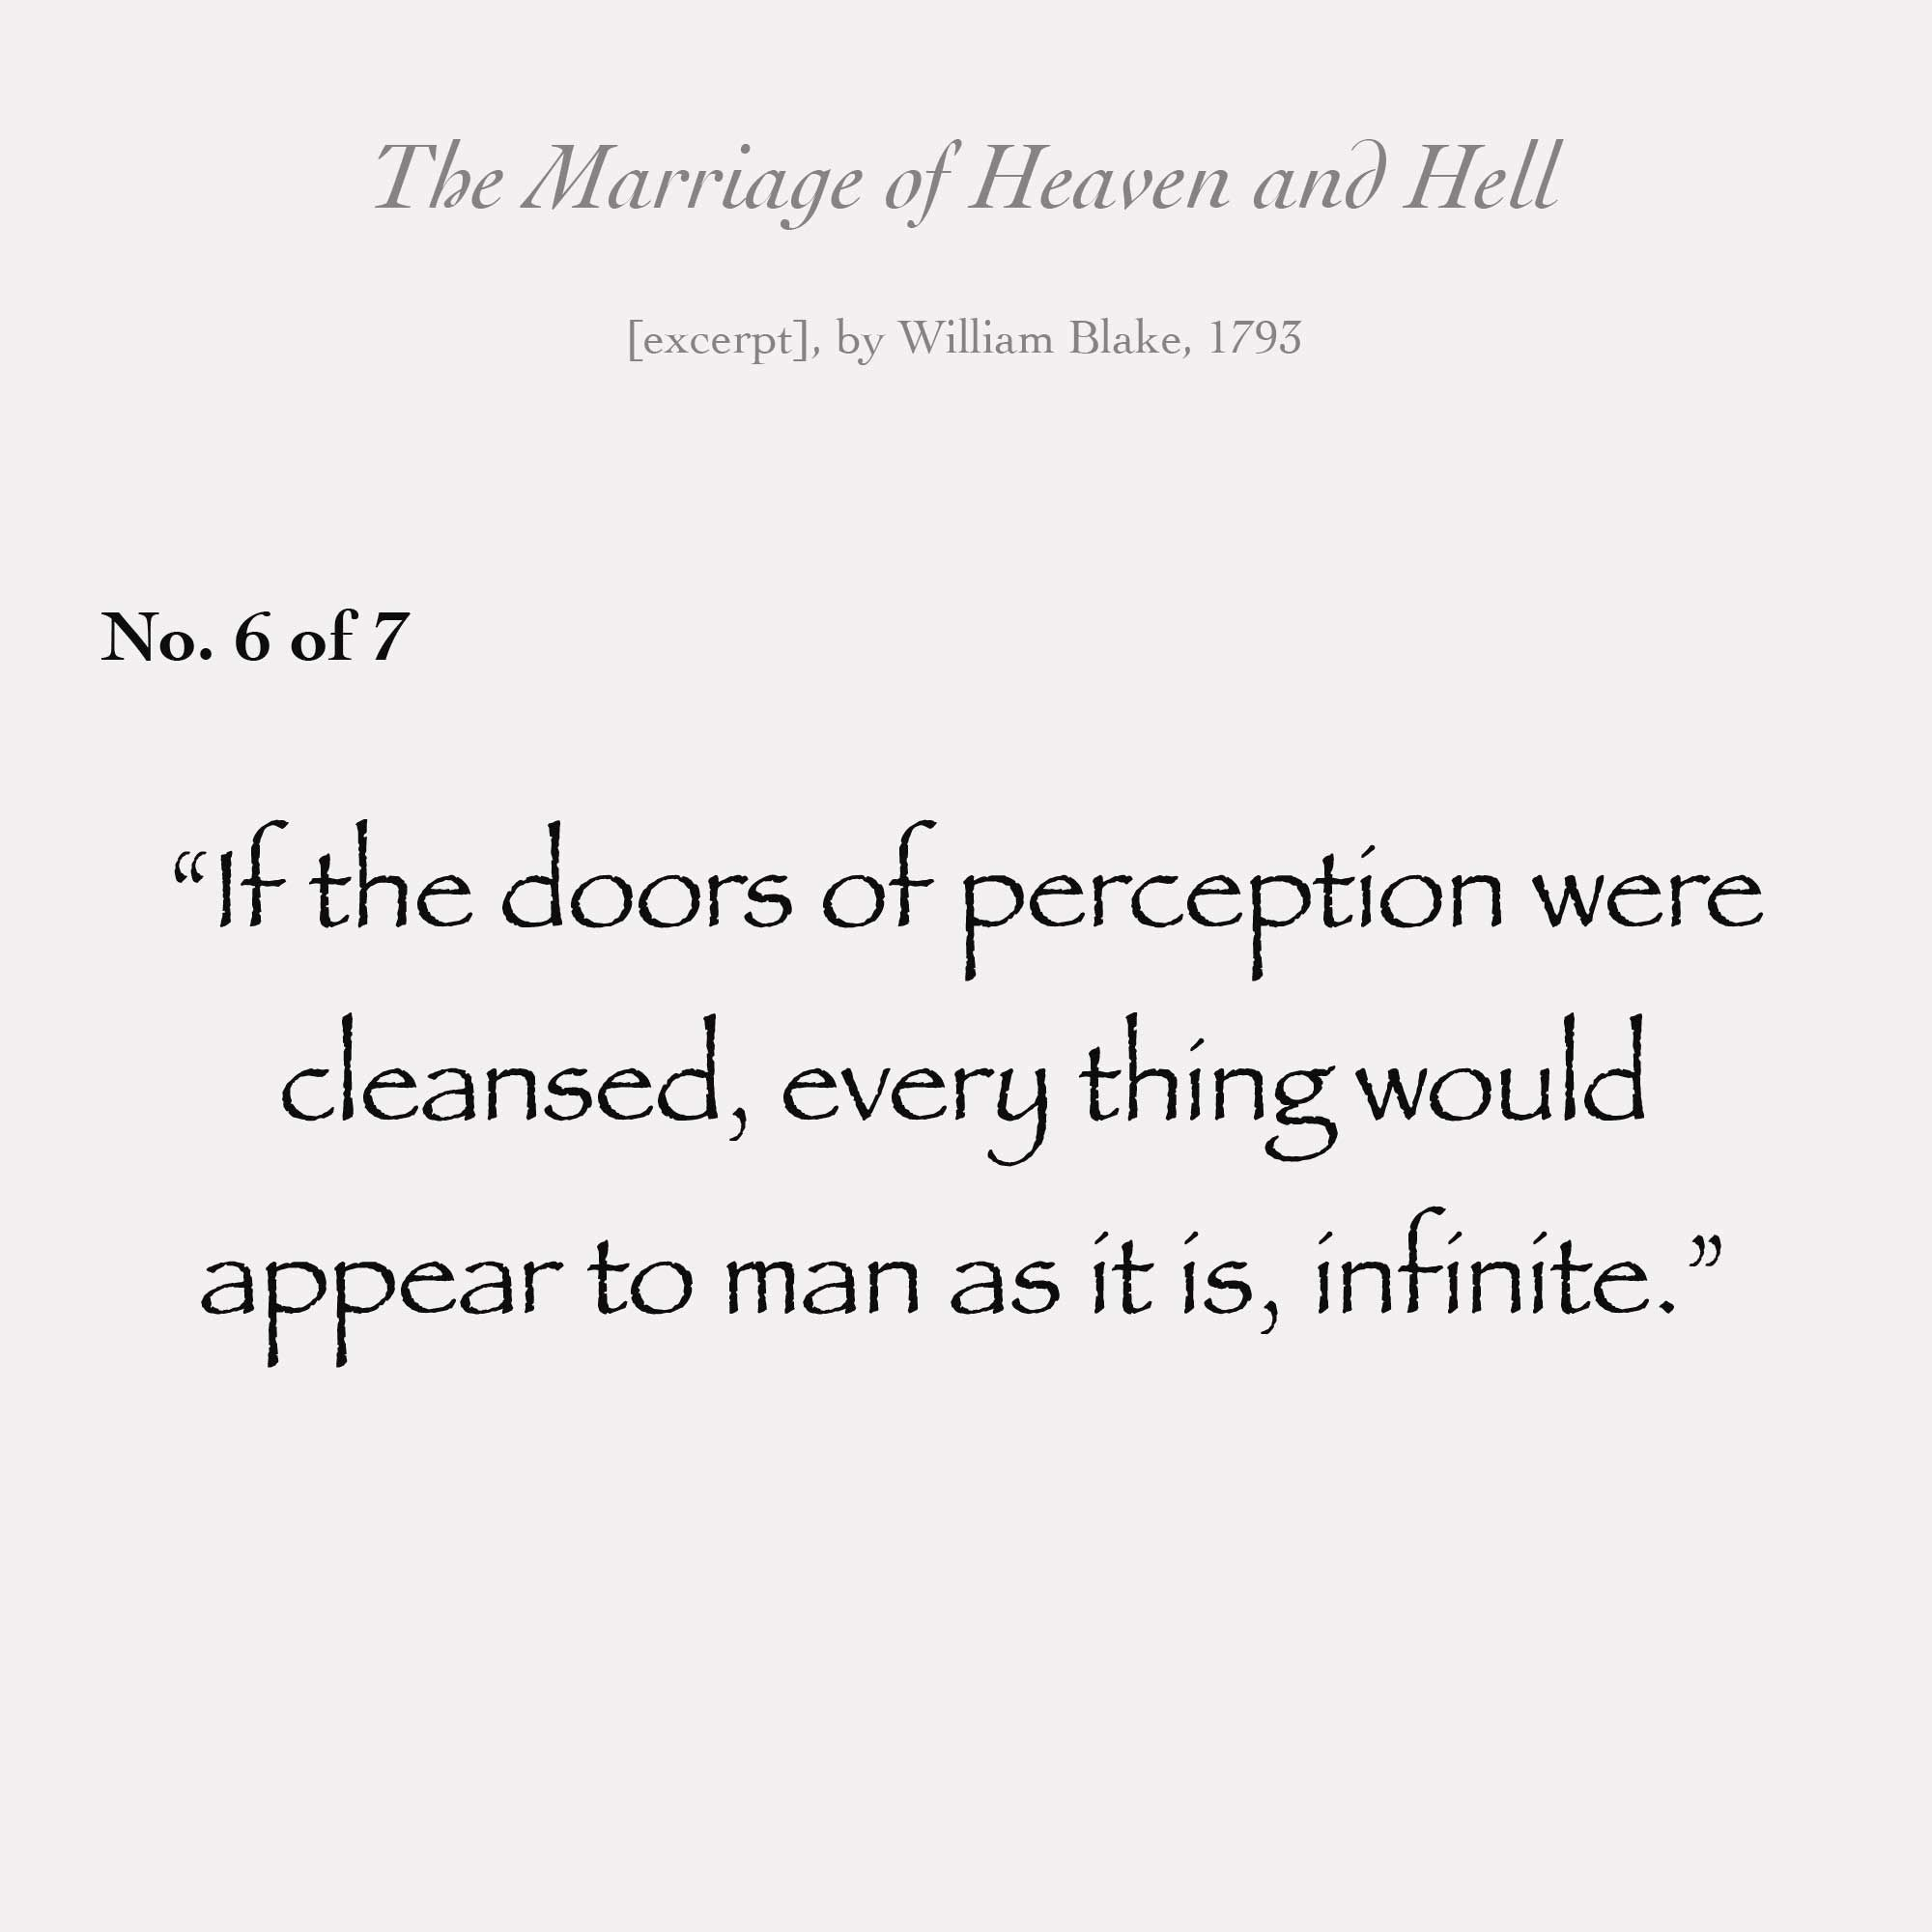 """If the doors of perception were cleansed every thing would appear to man as it is, infinite."""